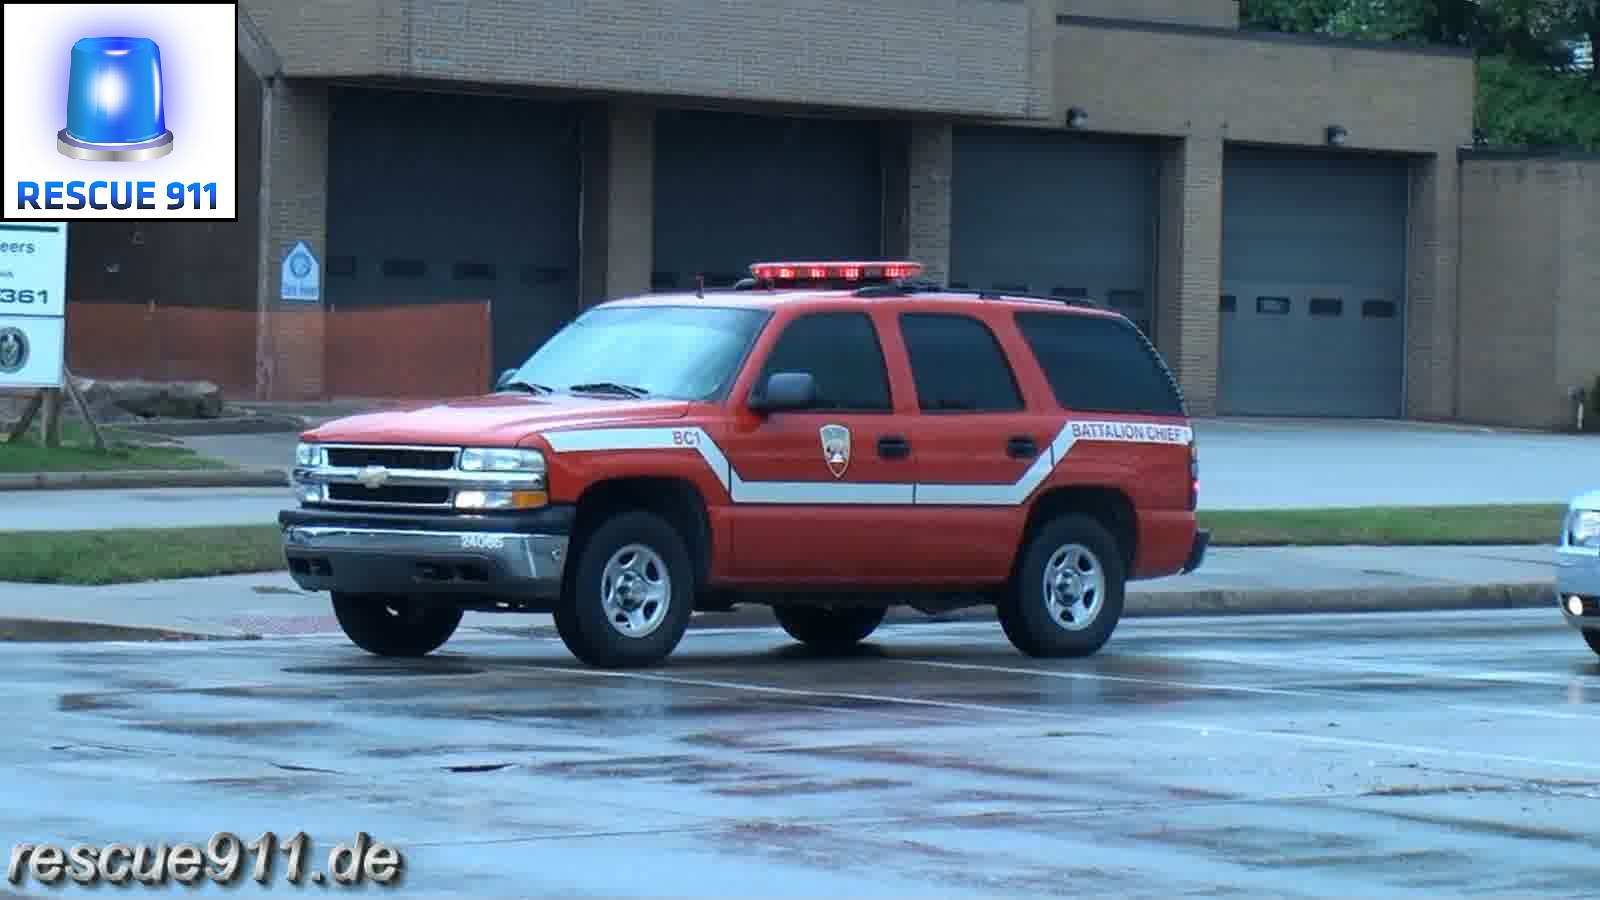 Battalion BC1 Fort Wayne Fire Department (stream)